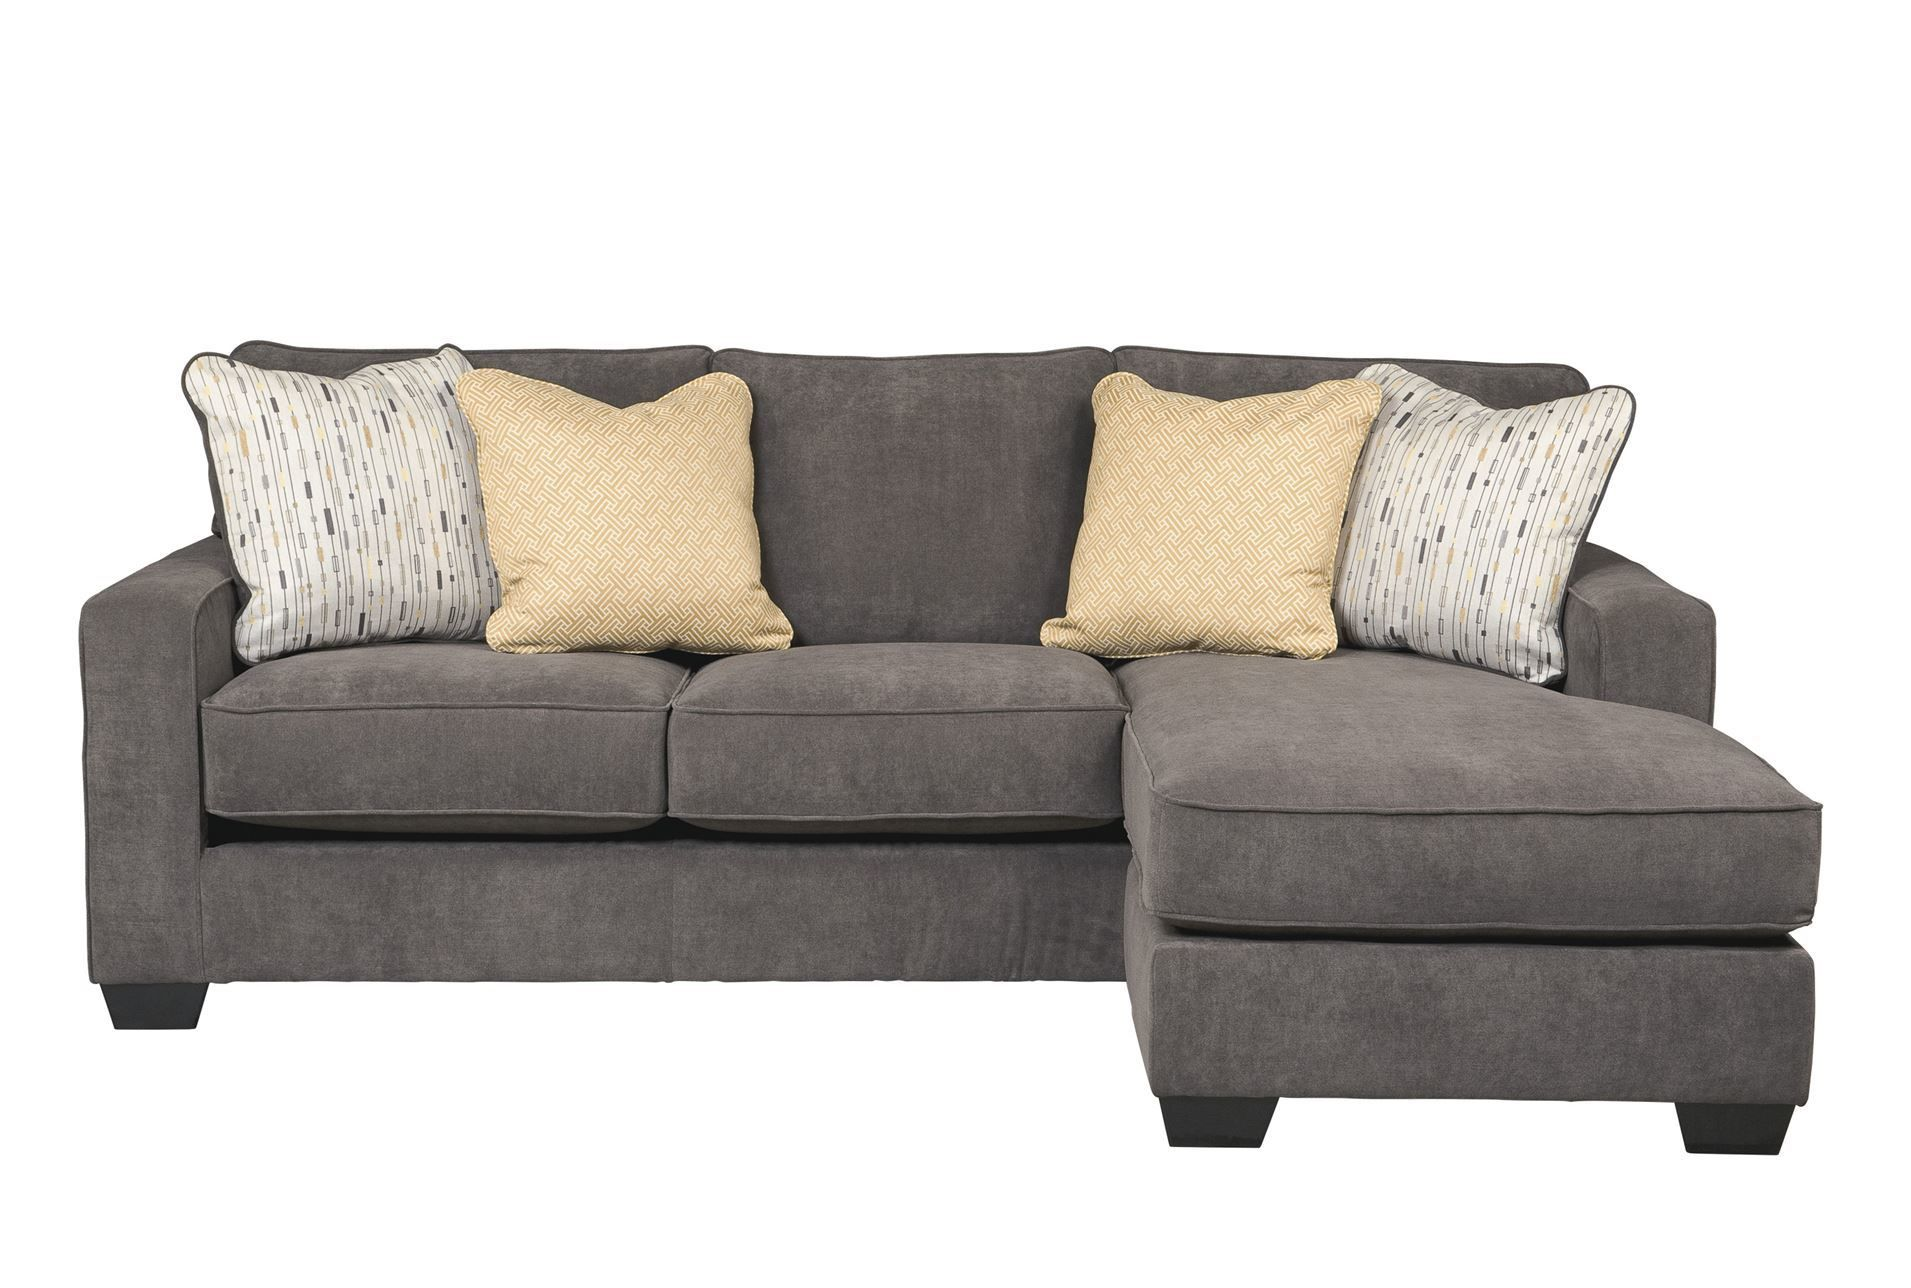 best klaussner sectional sofa inspiration-Luxury Klaussner Sectional sofa Décor